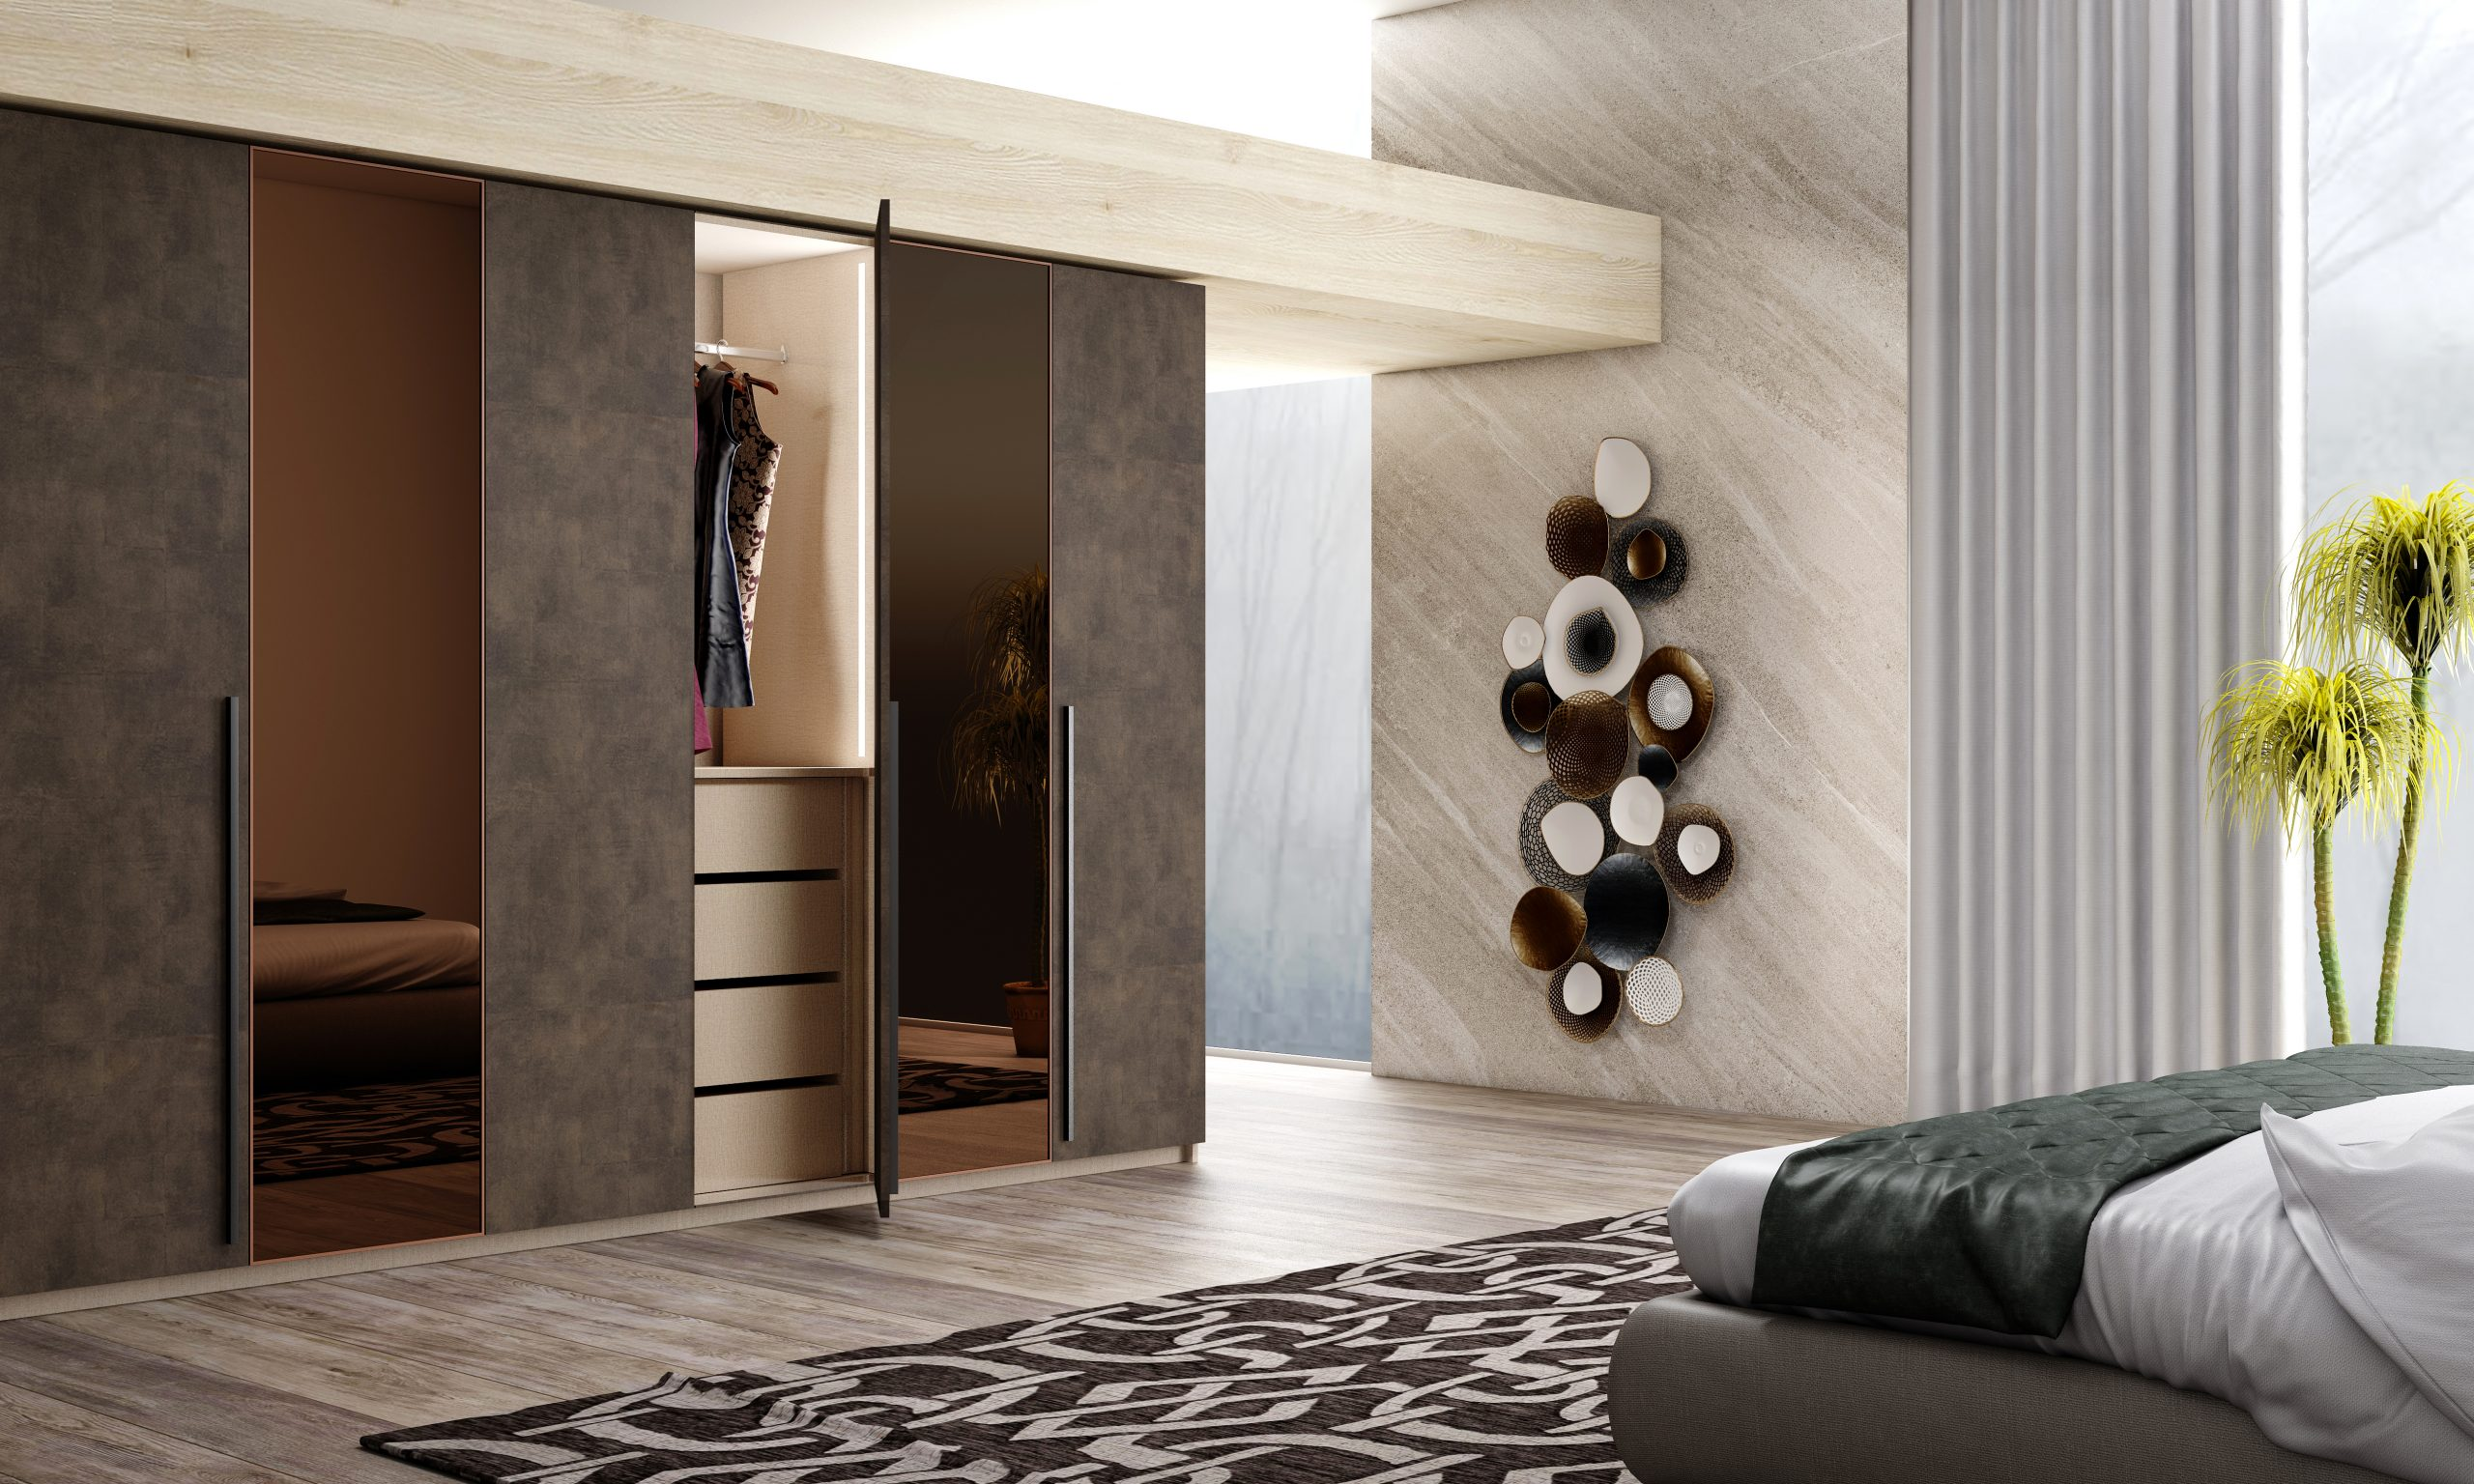 Hinged Fitted Wardrobe with full bronze mirror in Maya Bronze finish